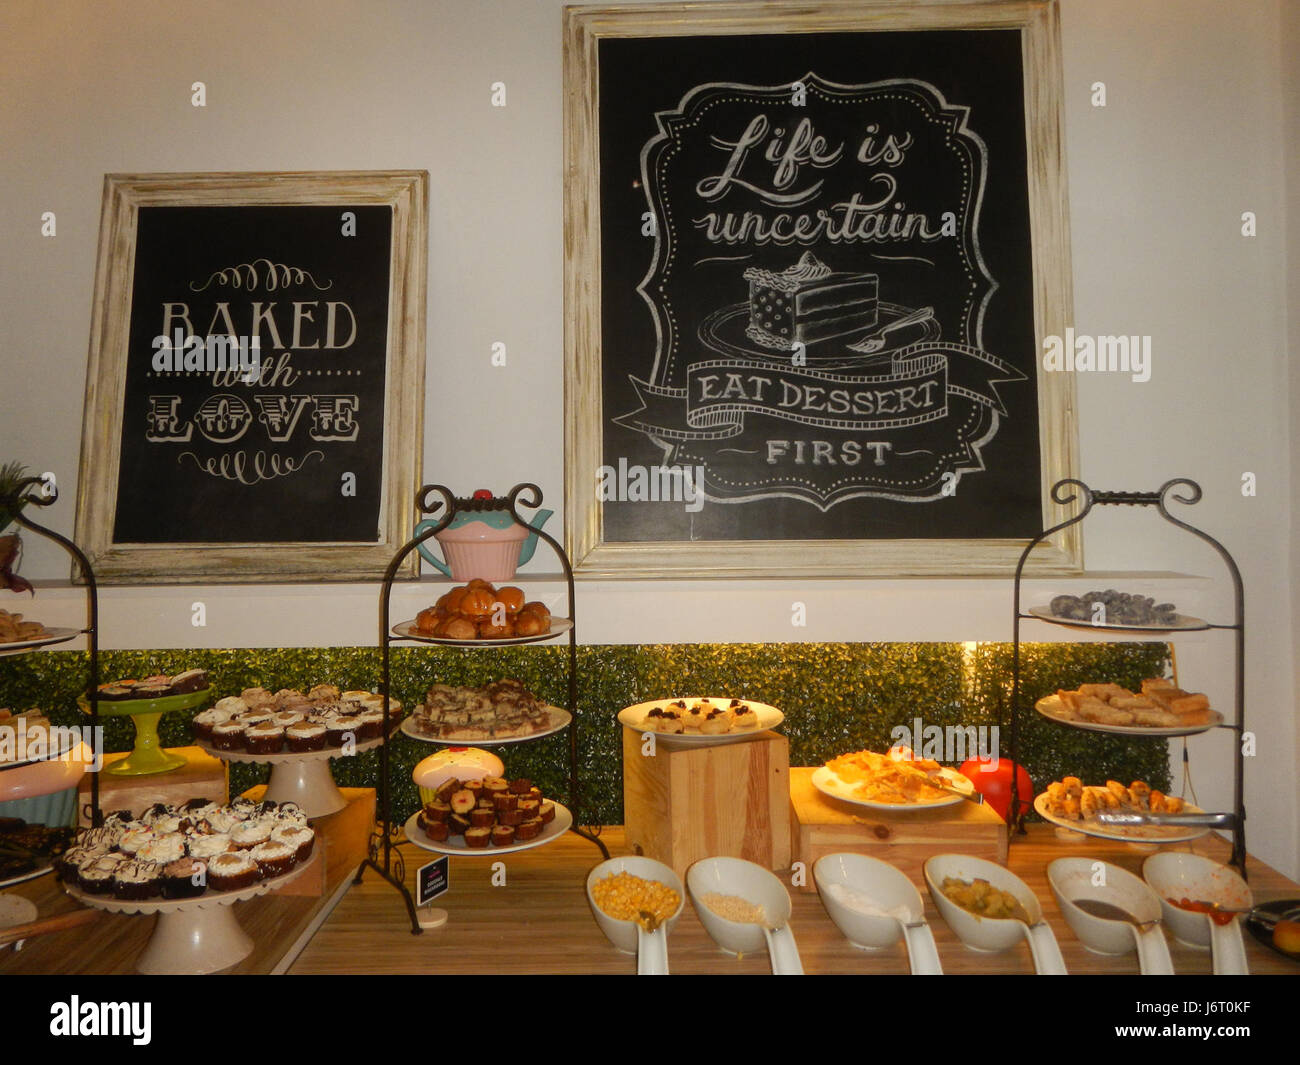 09476 Buffets Philippines Cakes Pastries Stockfotos & 09476 Buffets ...